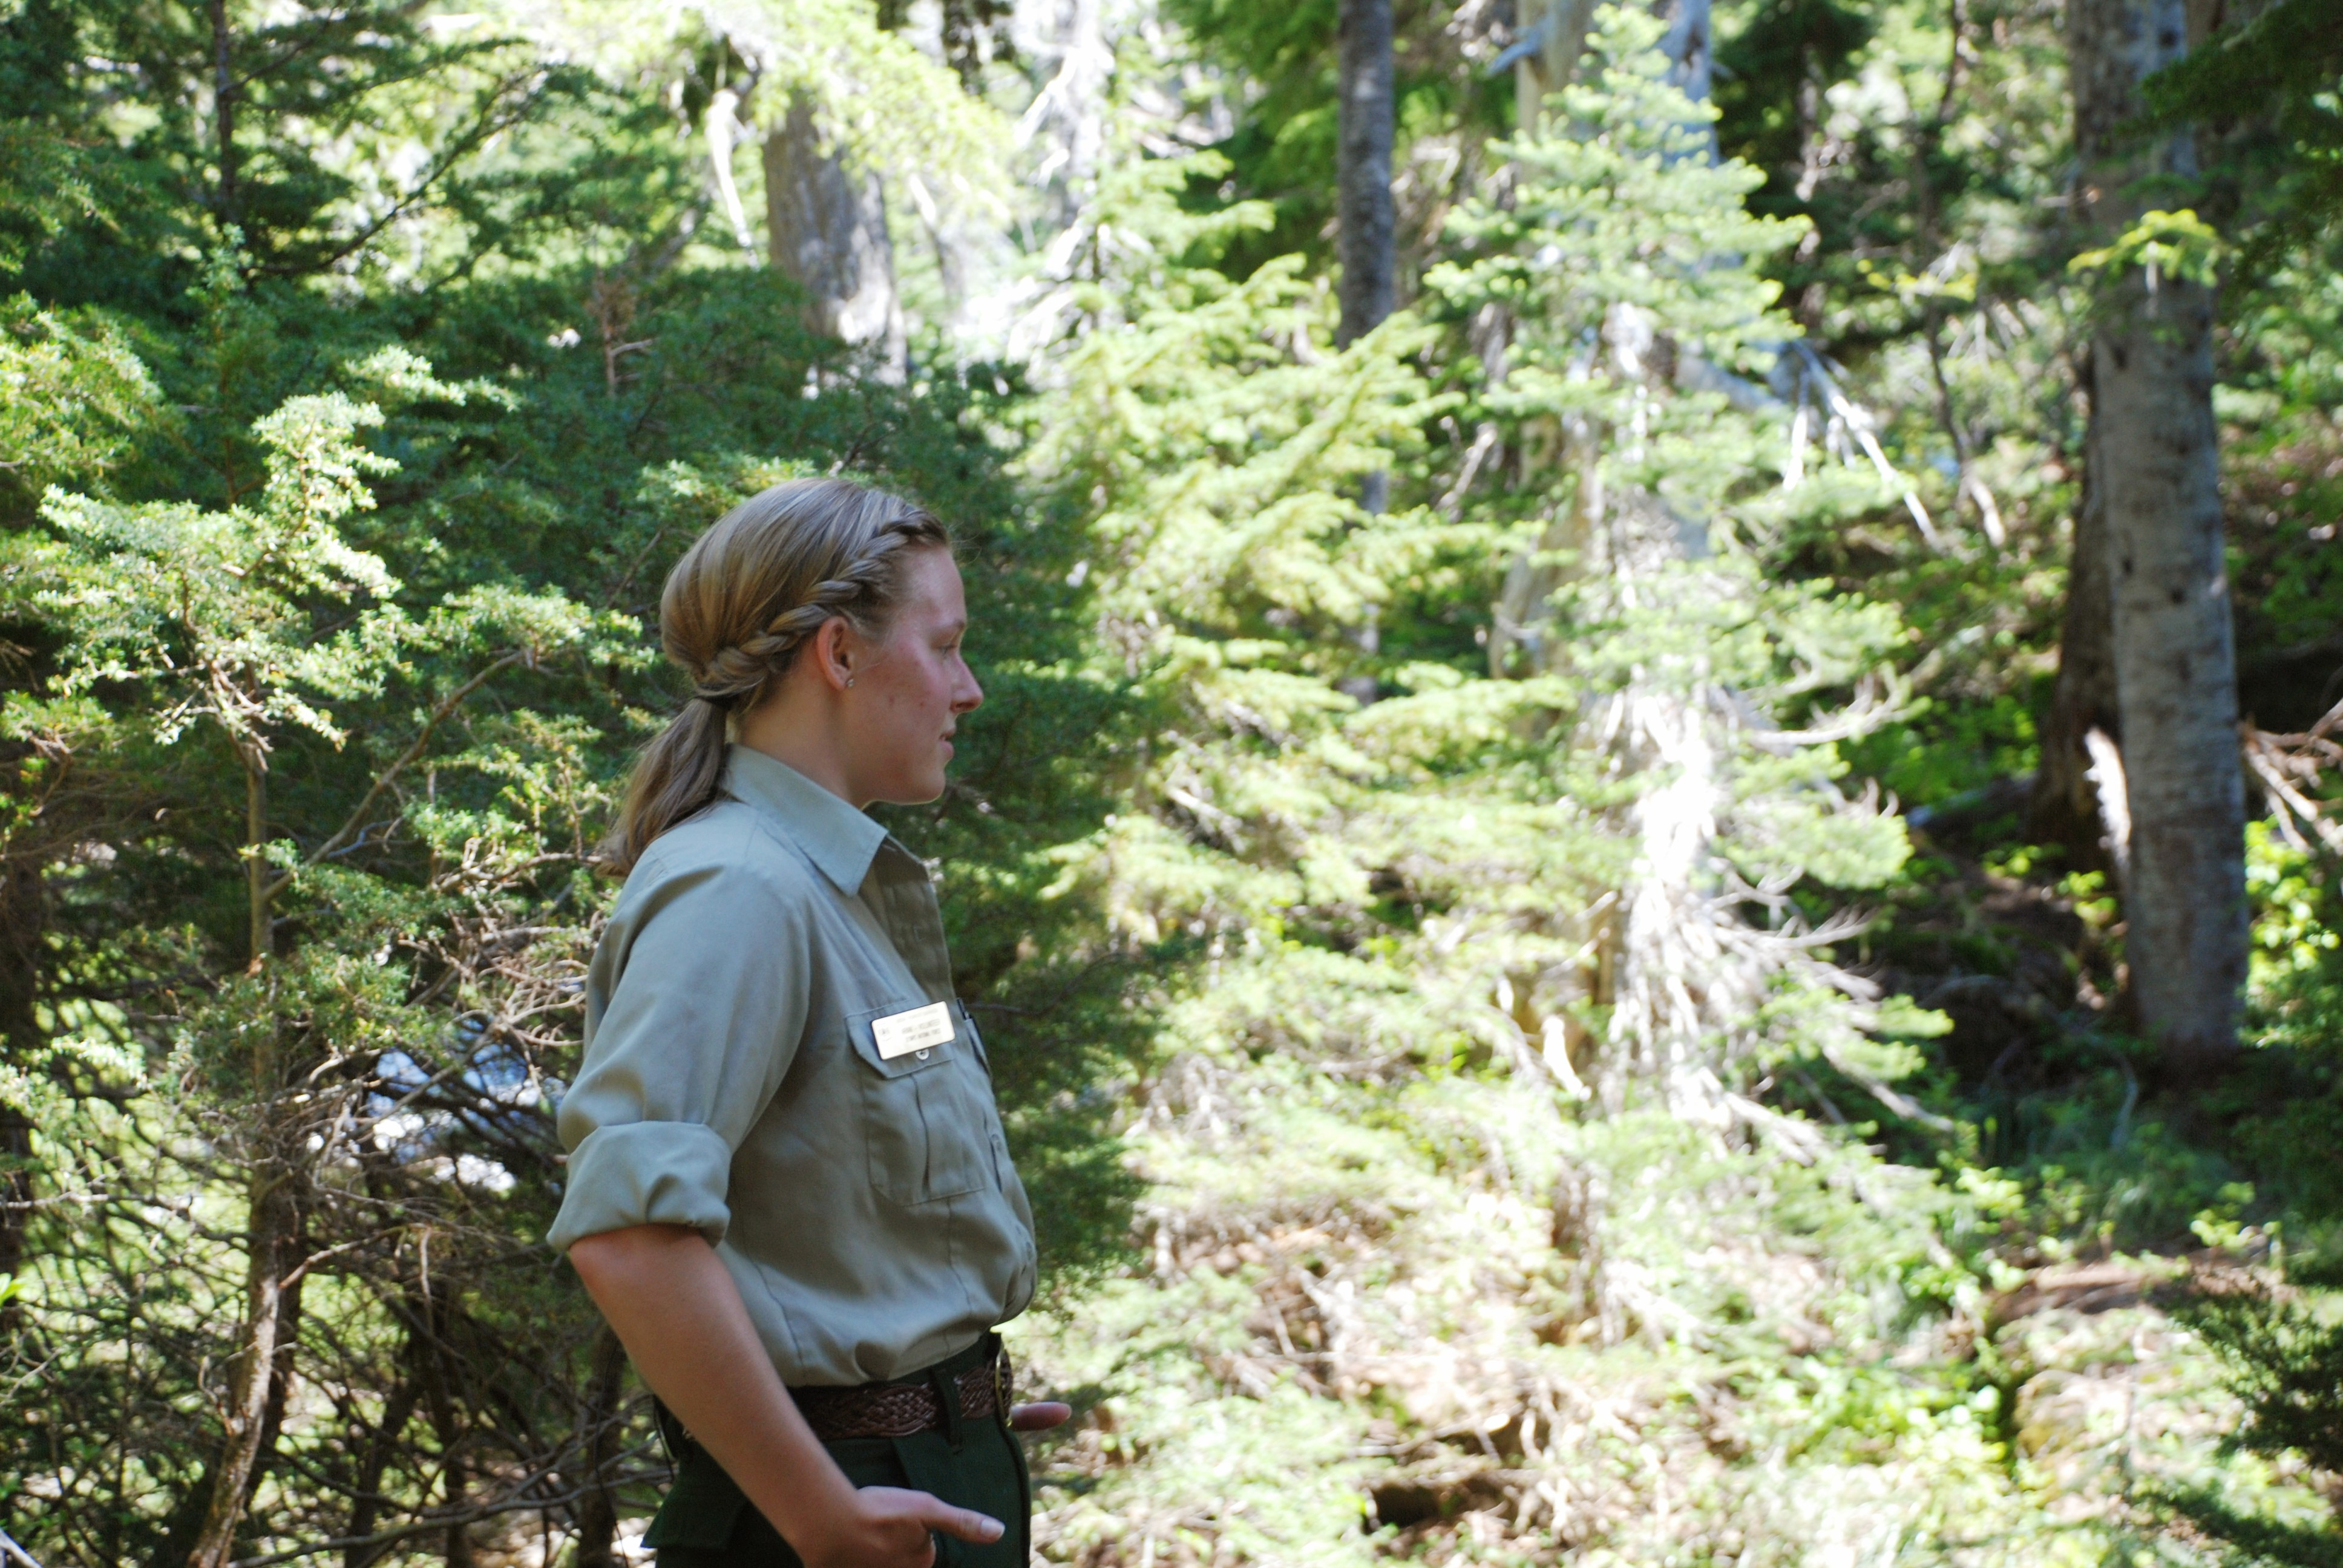 Female Forest ranger profile with forested background.